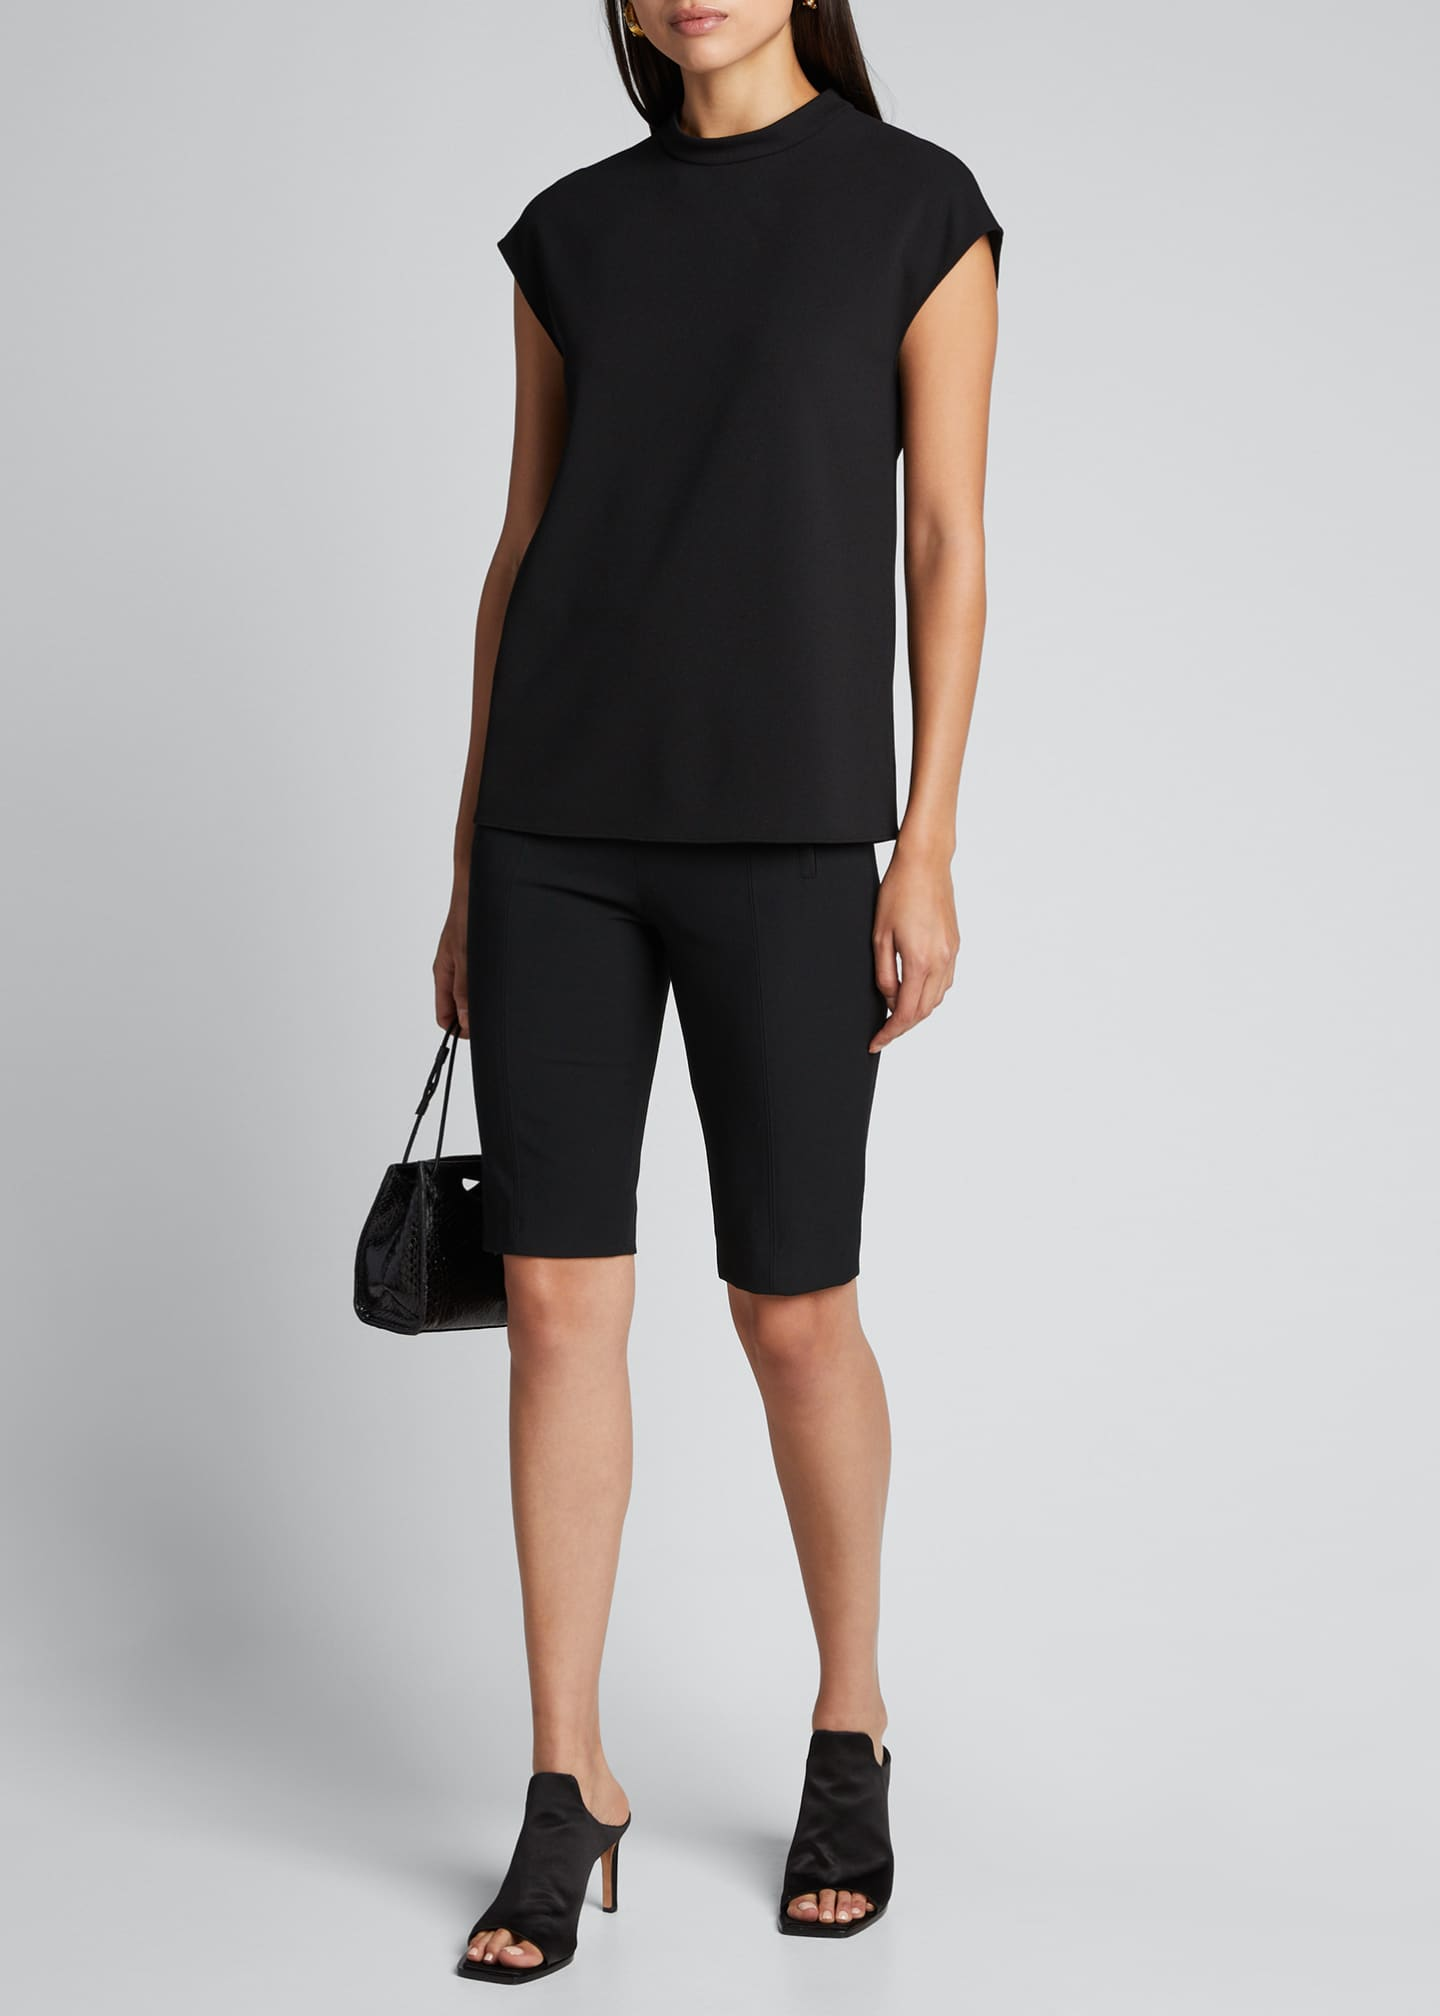 Image 1 of 5: Structured Crepe Mock-Neck Sleeveless Top